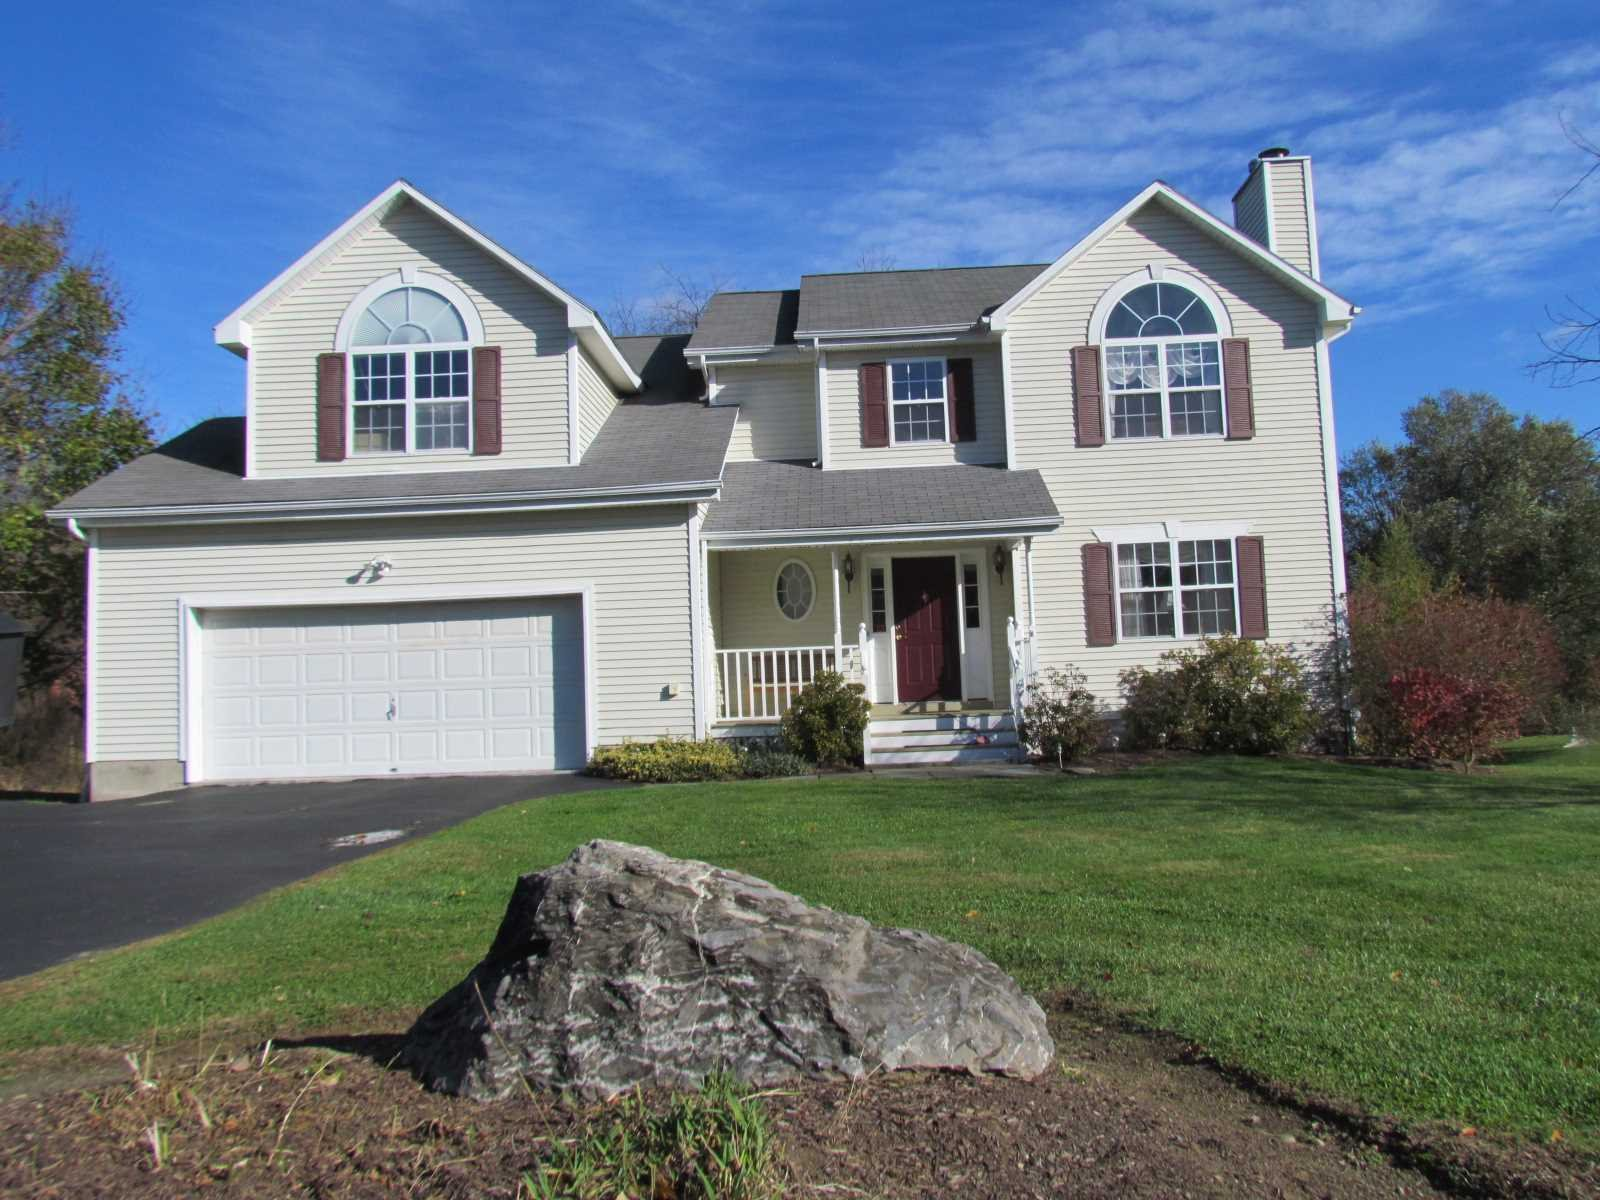 Single Family Home for Sale at 8 REGENCY Drive 8 REGENCY Drive Poughkeepsie, New York 12603 United States